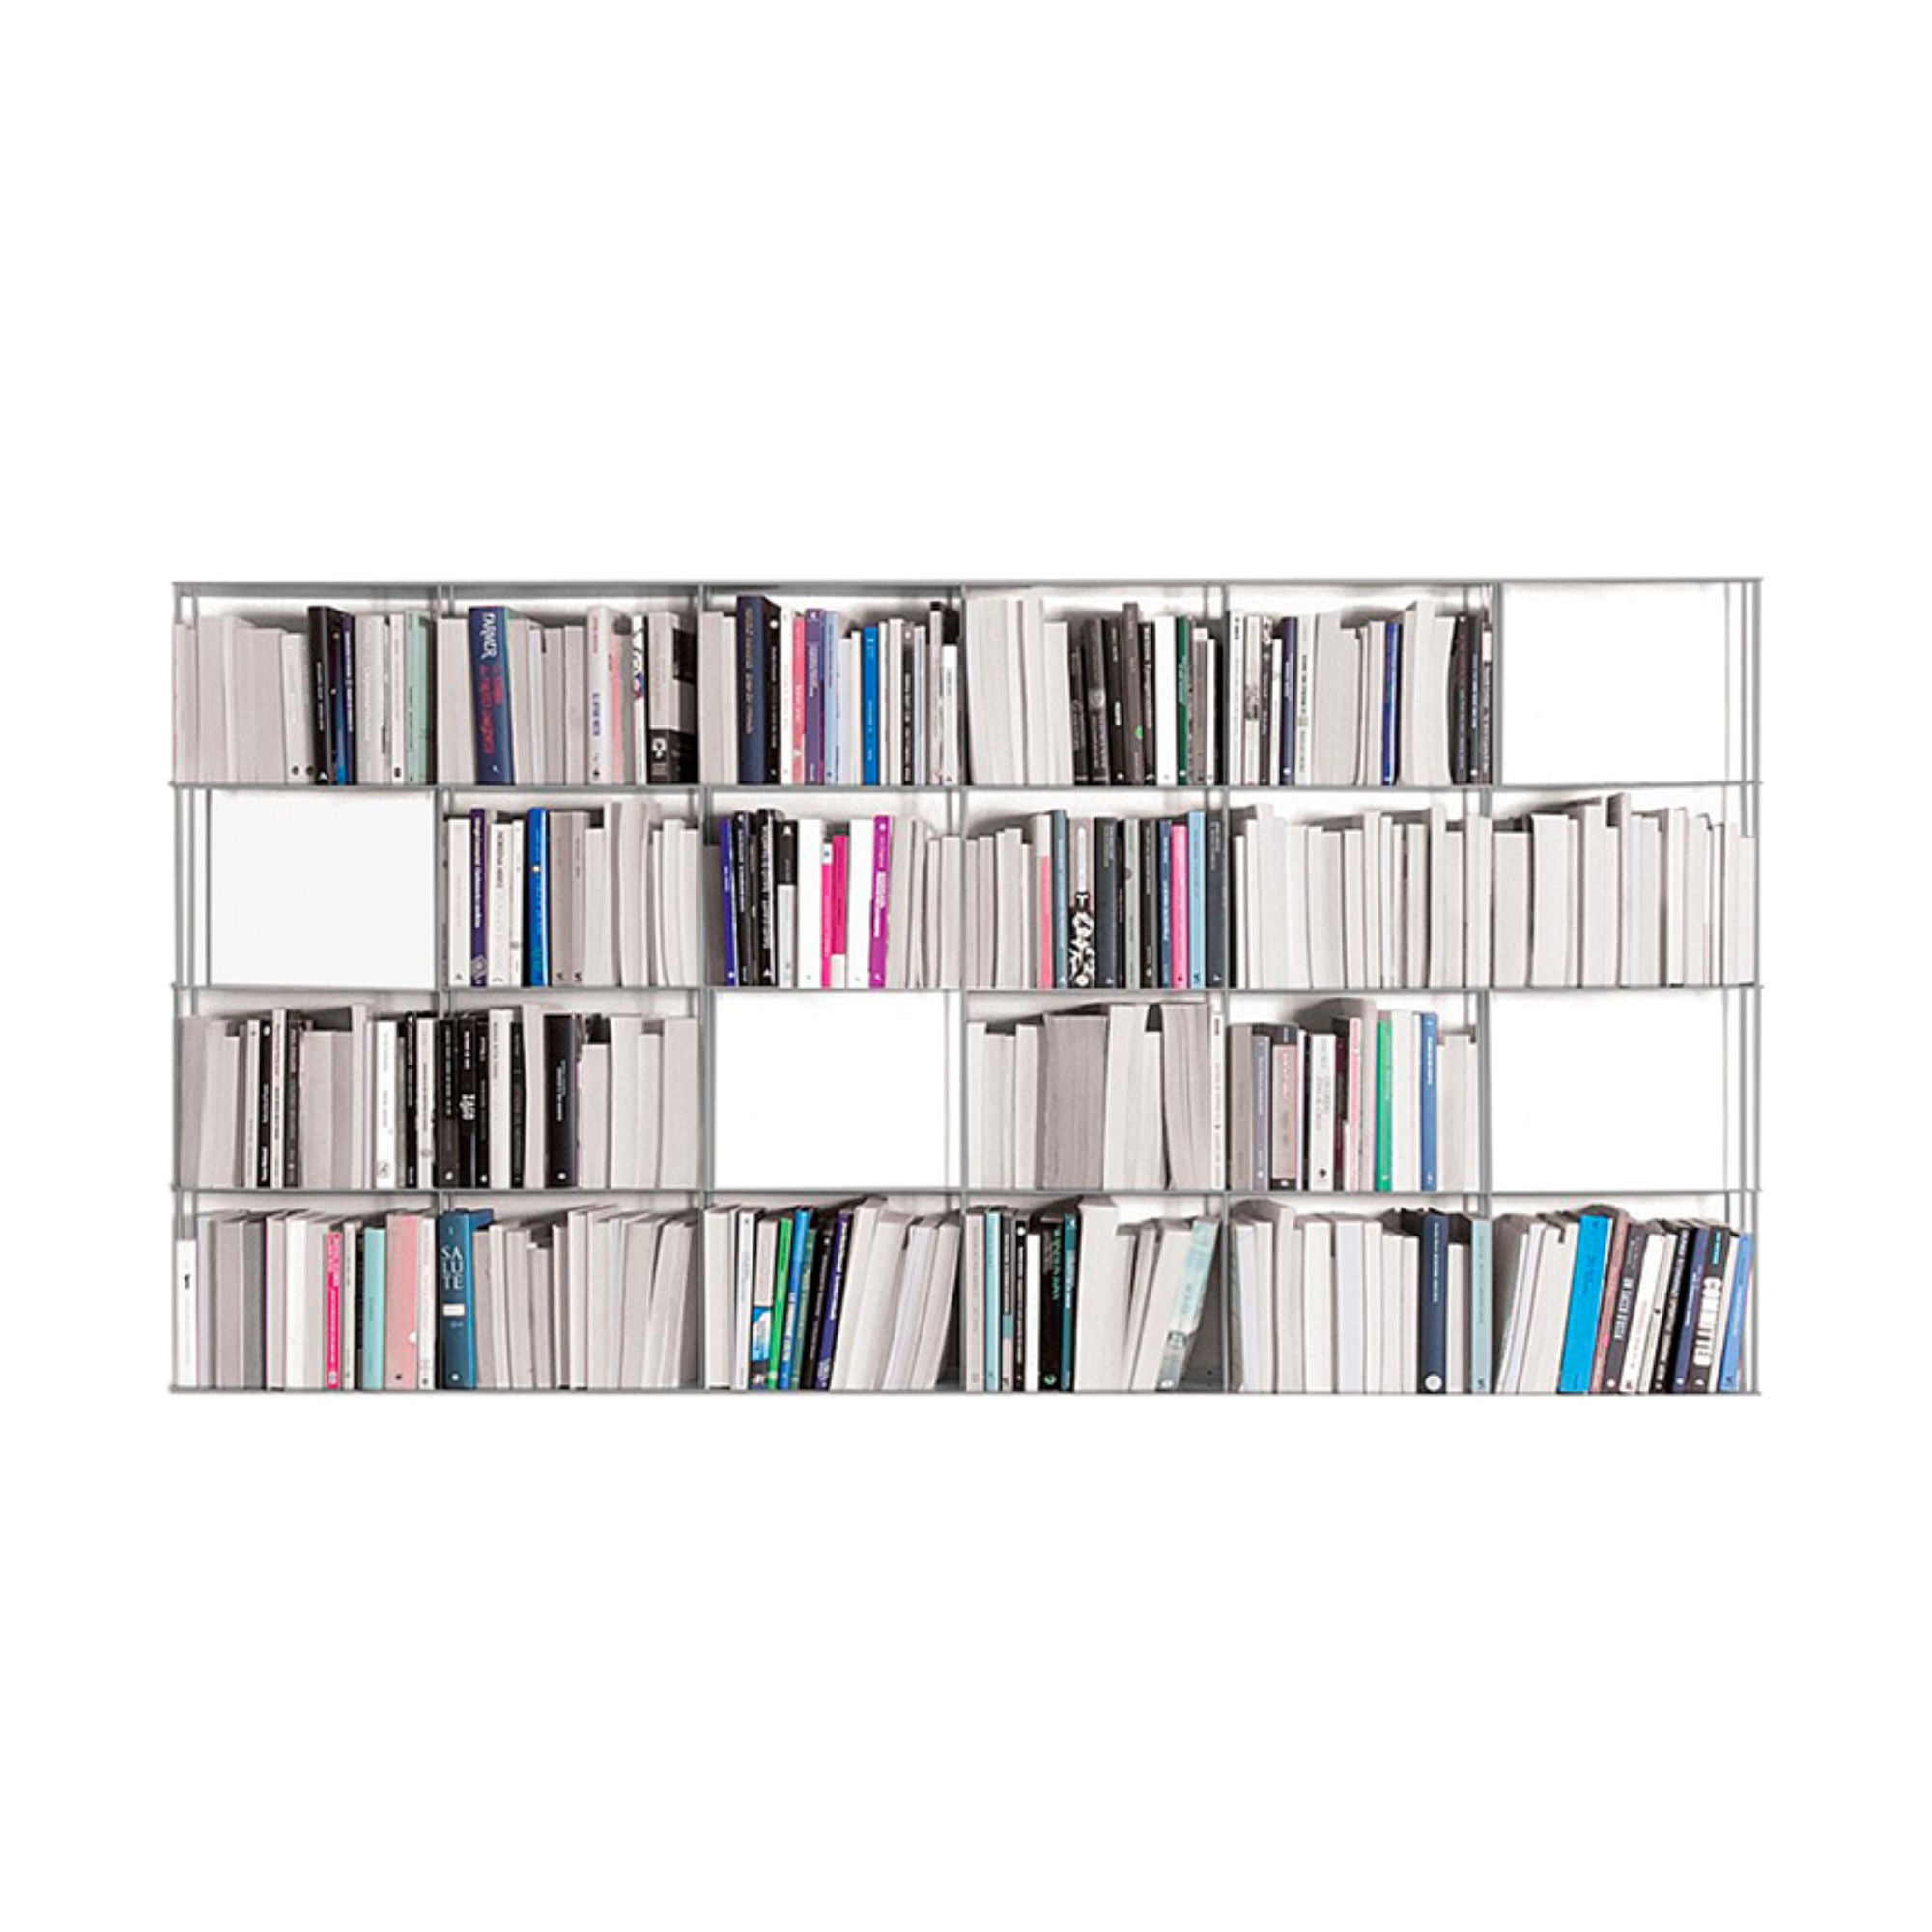 Kriptonite Krossing Shelving Unit 200x100cm , Aluminium